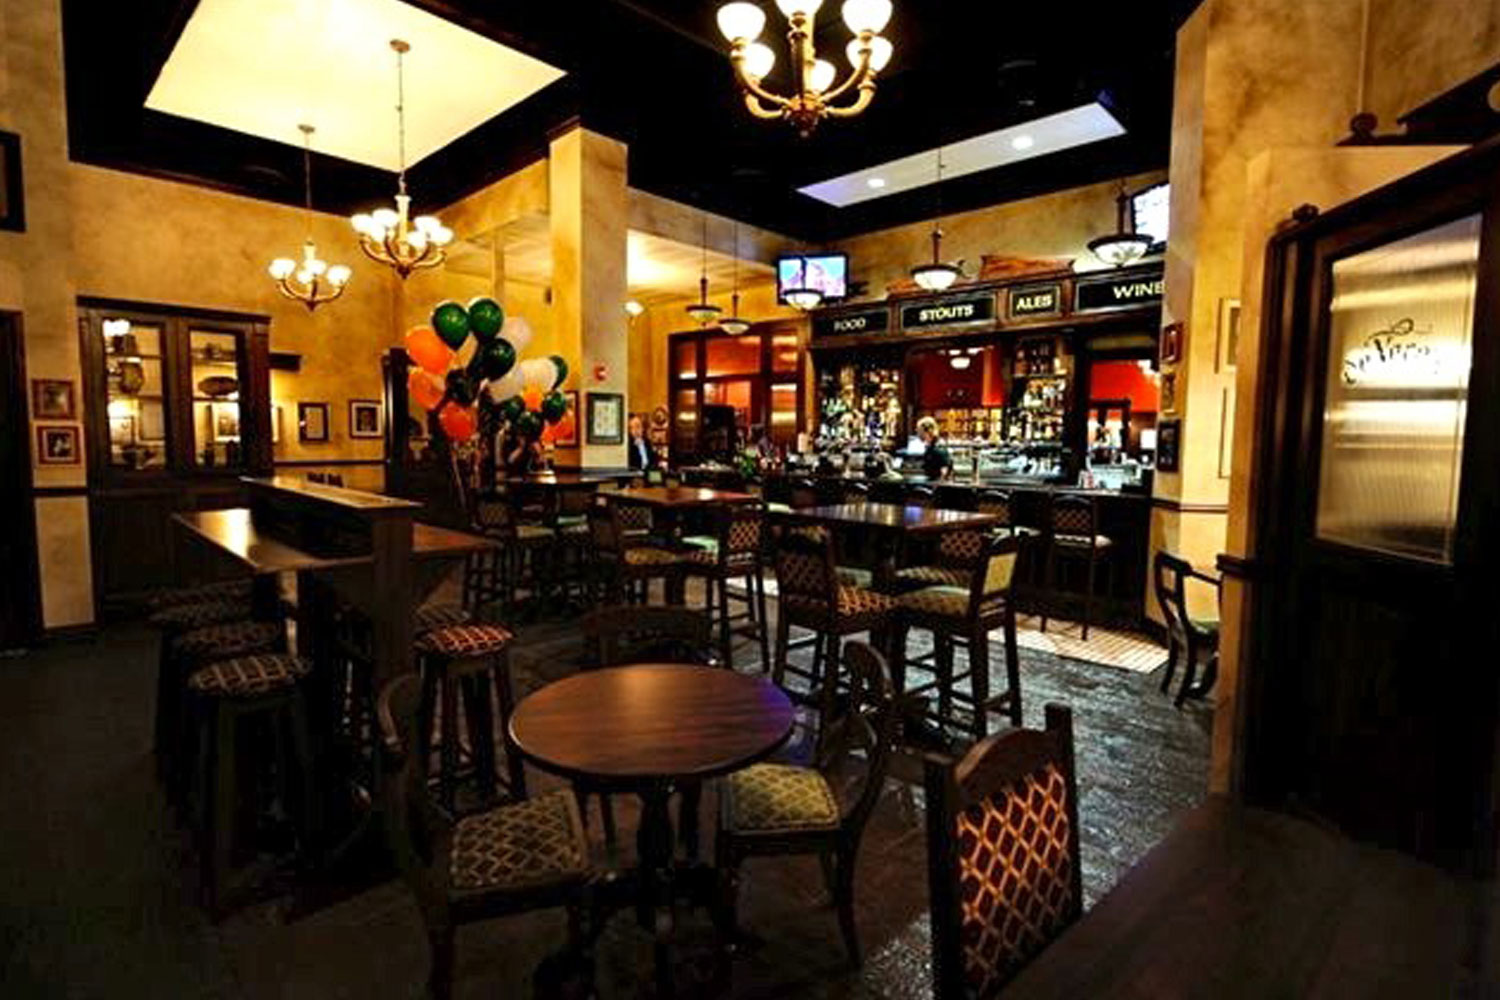 de Vere's Irish pub design interior view of wooden high tables and backed stool seating